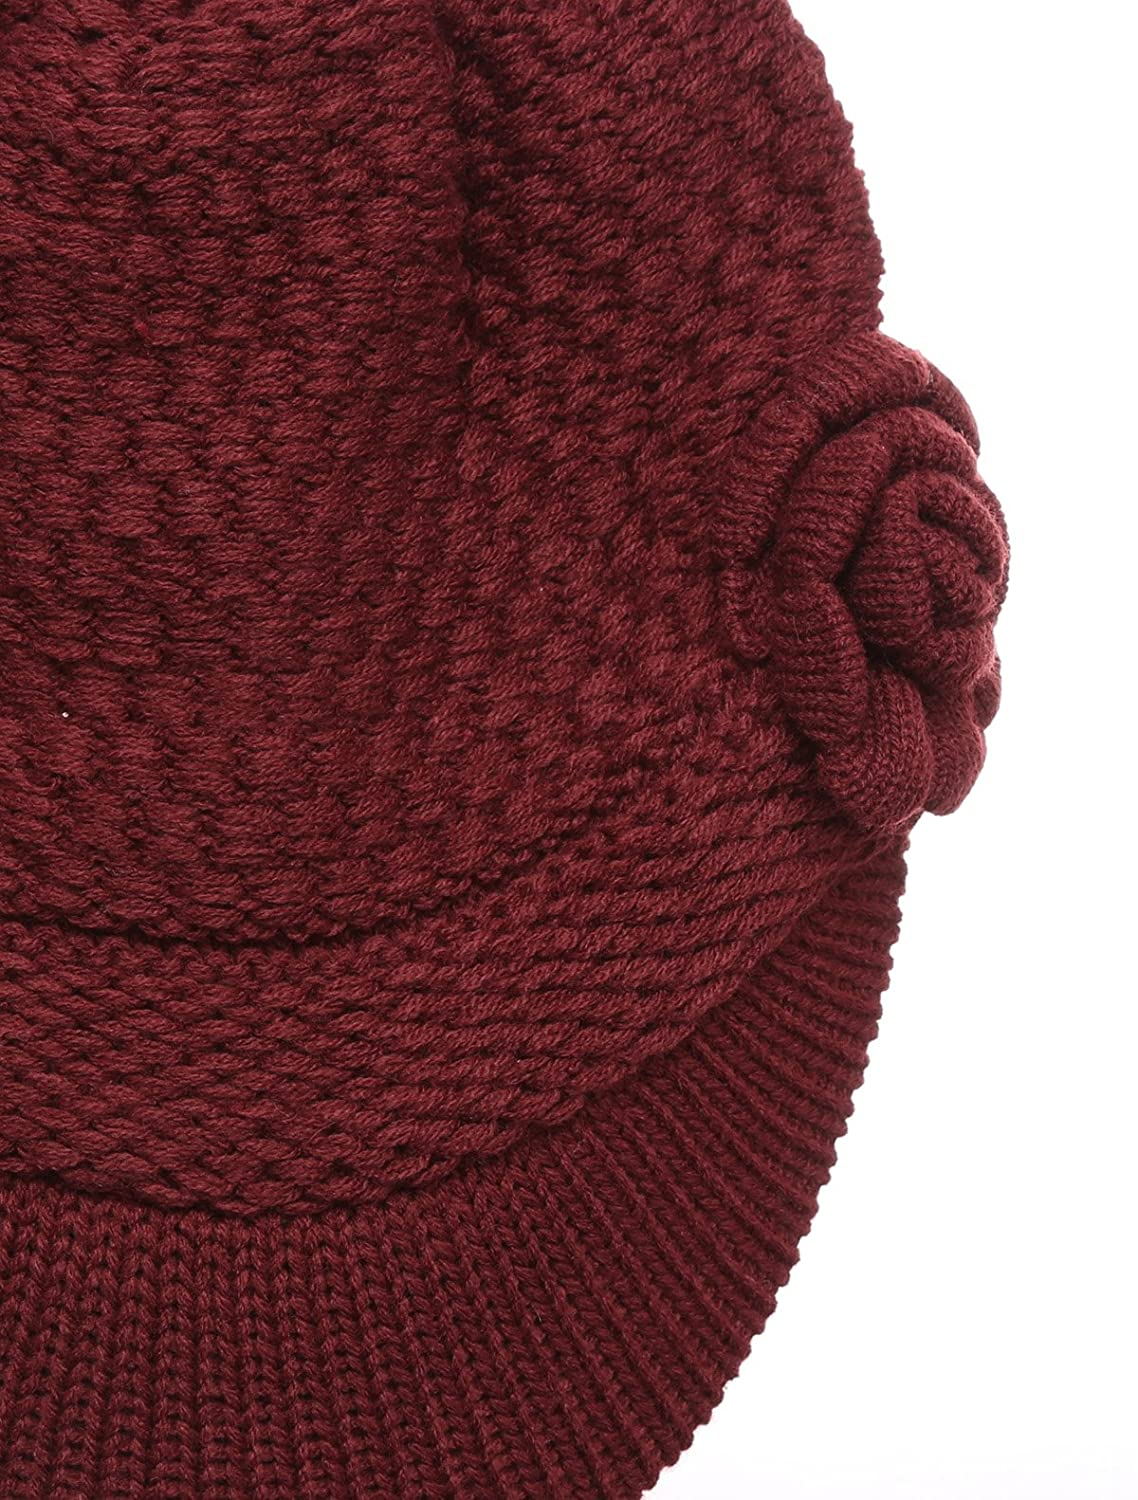 e5e8efcdd566a MIRMARU Women s Winter Cable Knitted Beret Visor Beanie Hat with Scrunchy.  Beige) MM- larger image